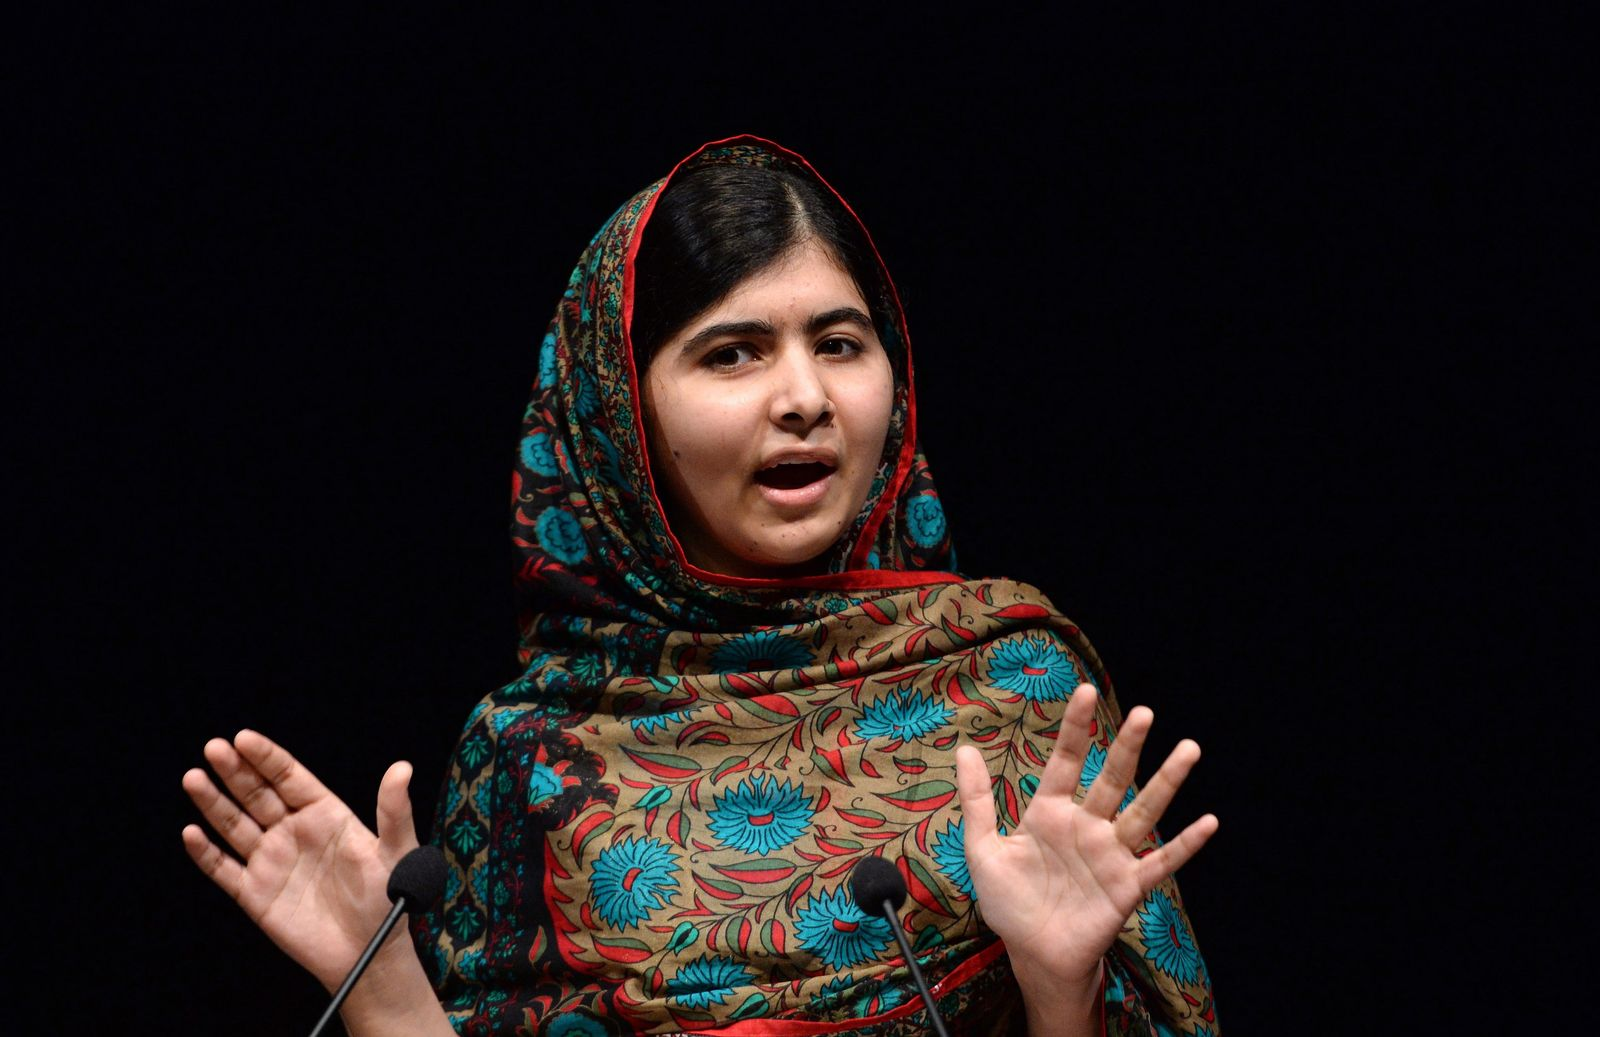 Malala Yousafzai wins the Nobel Peace prize.